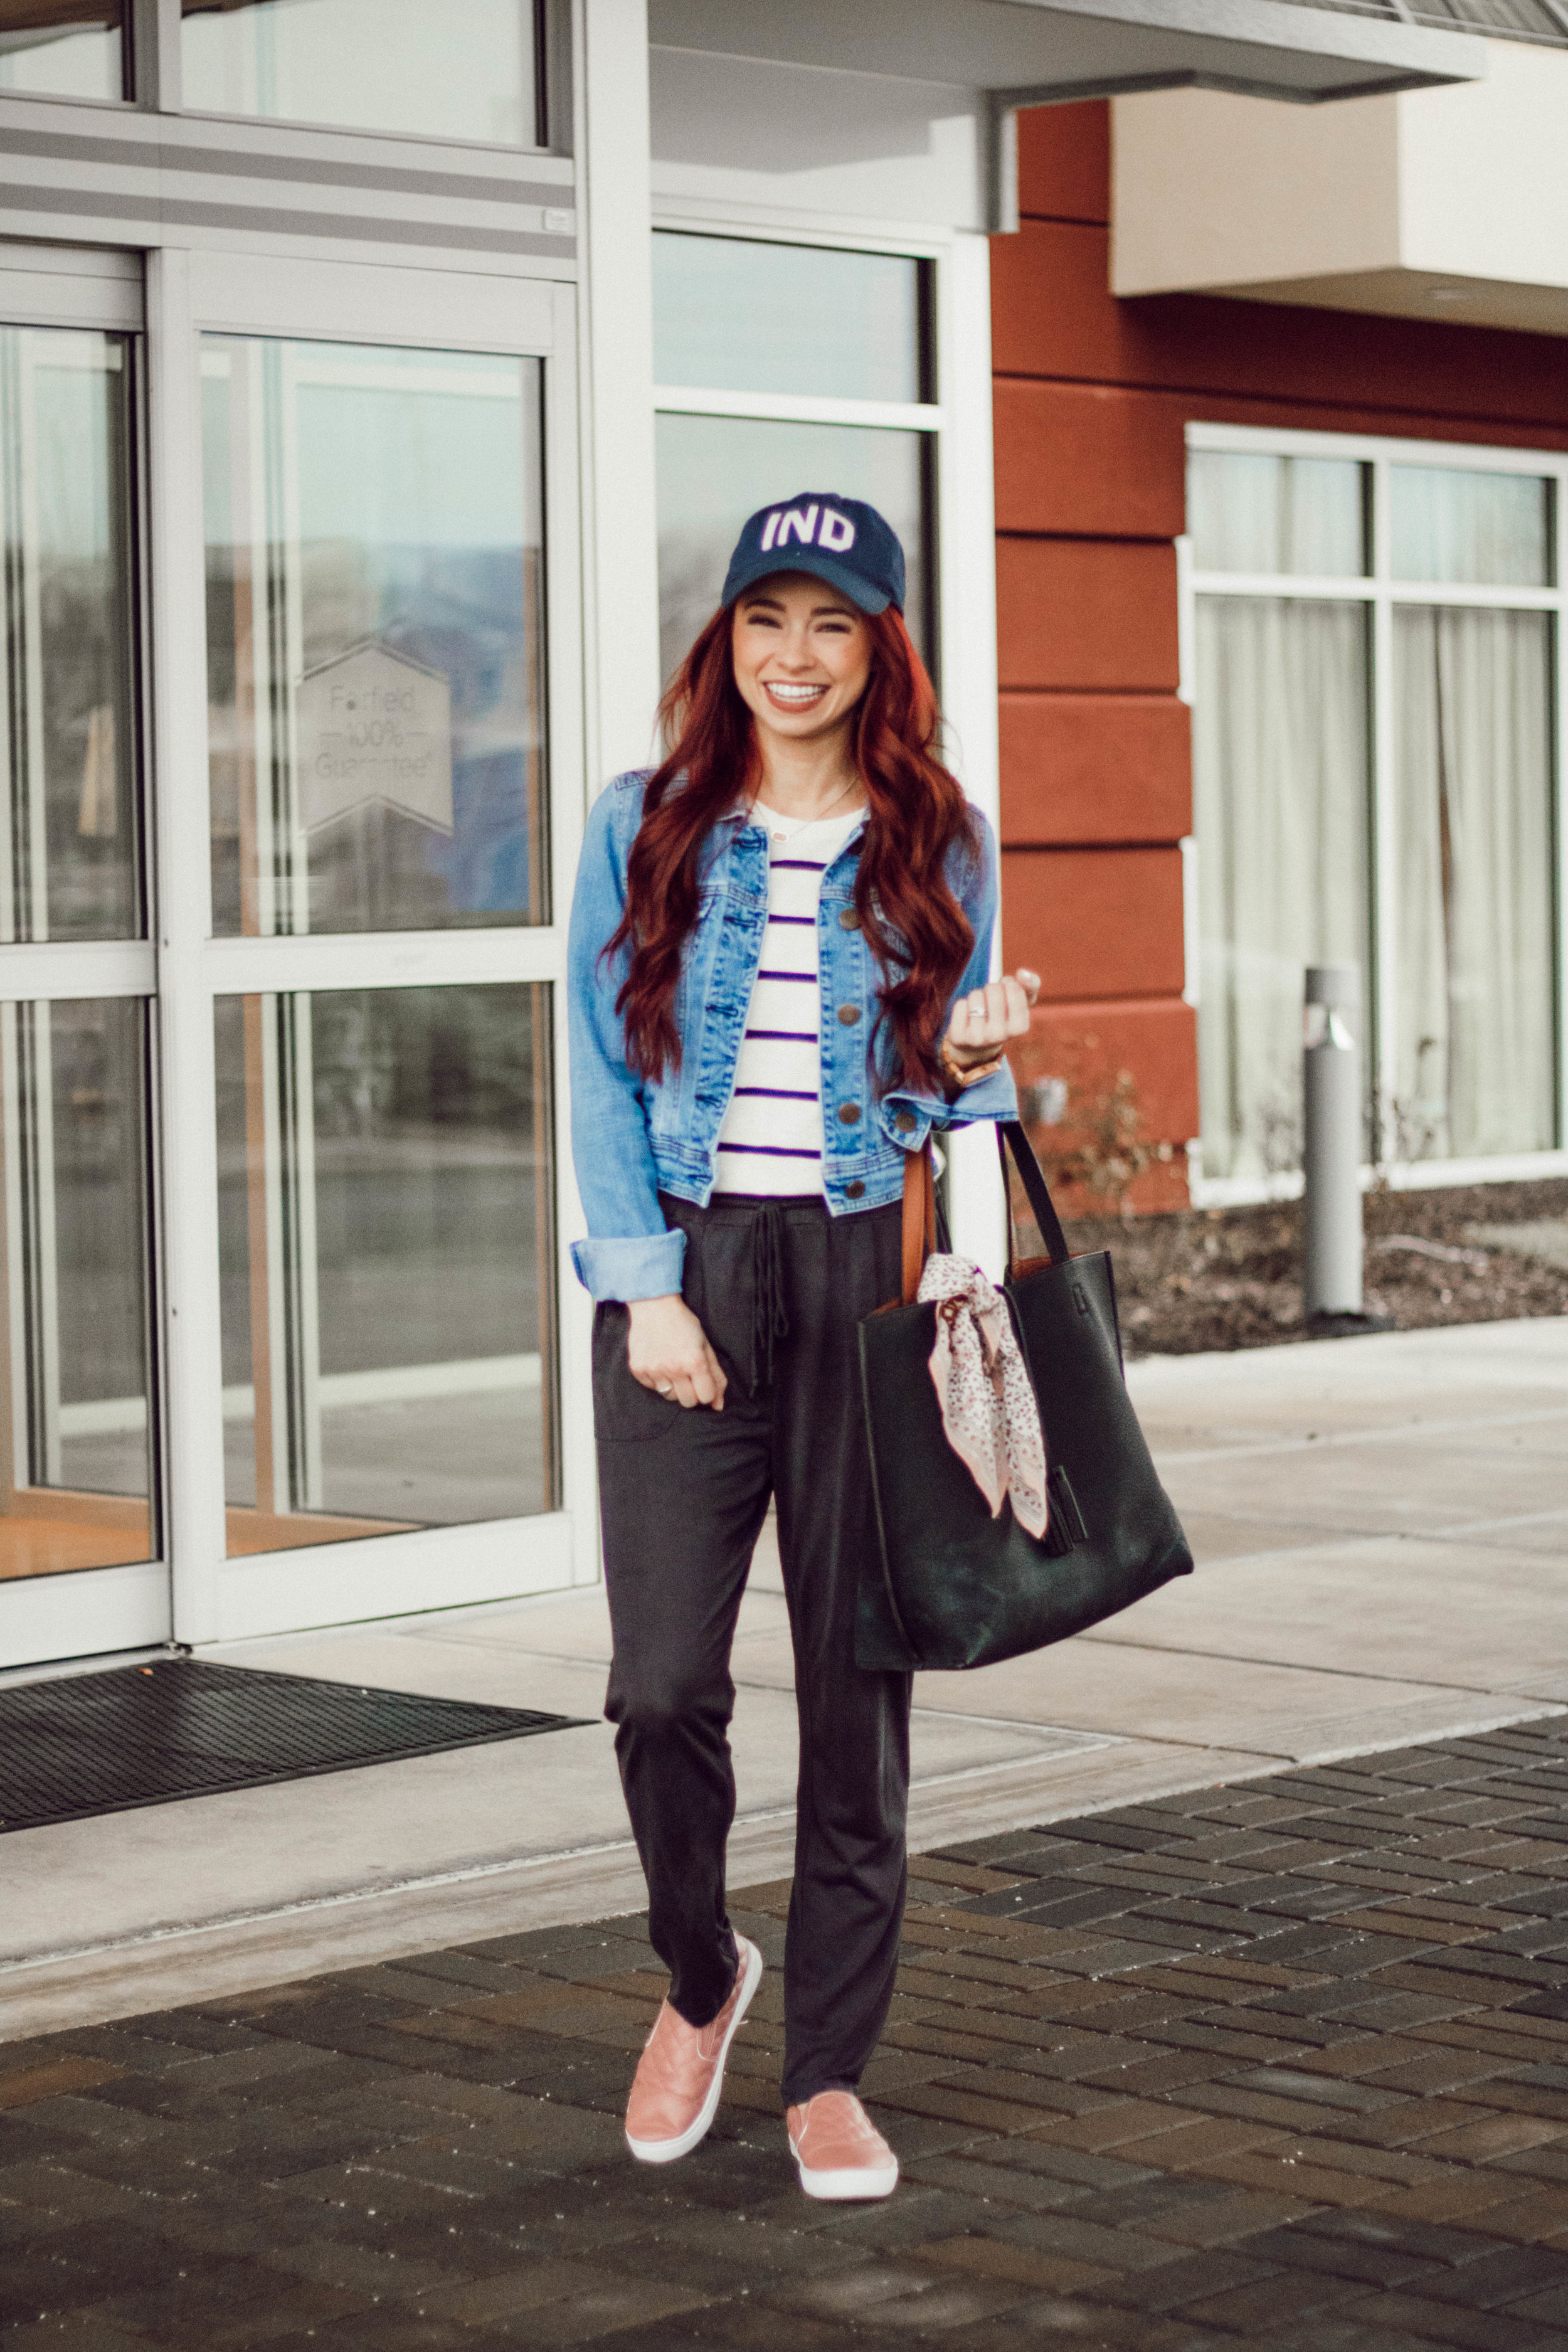 5 Airport Fashion Tips by popular Indianapolis style blogger Trendy in Indy